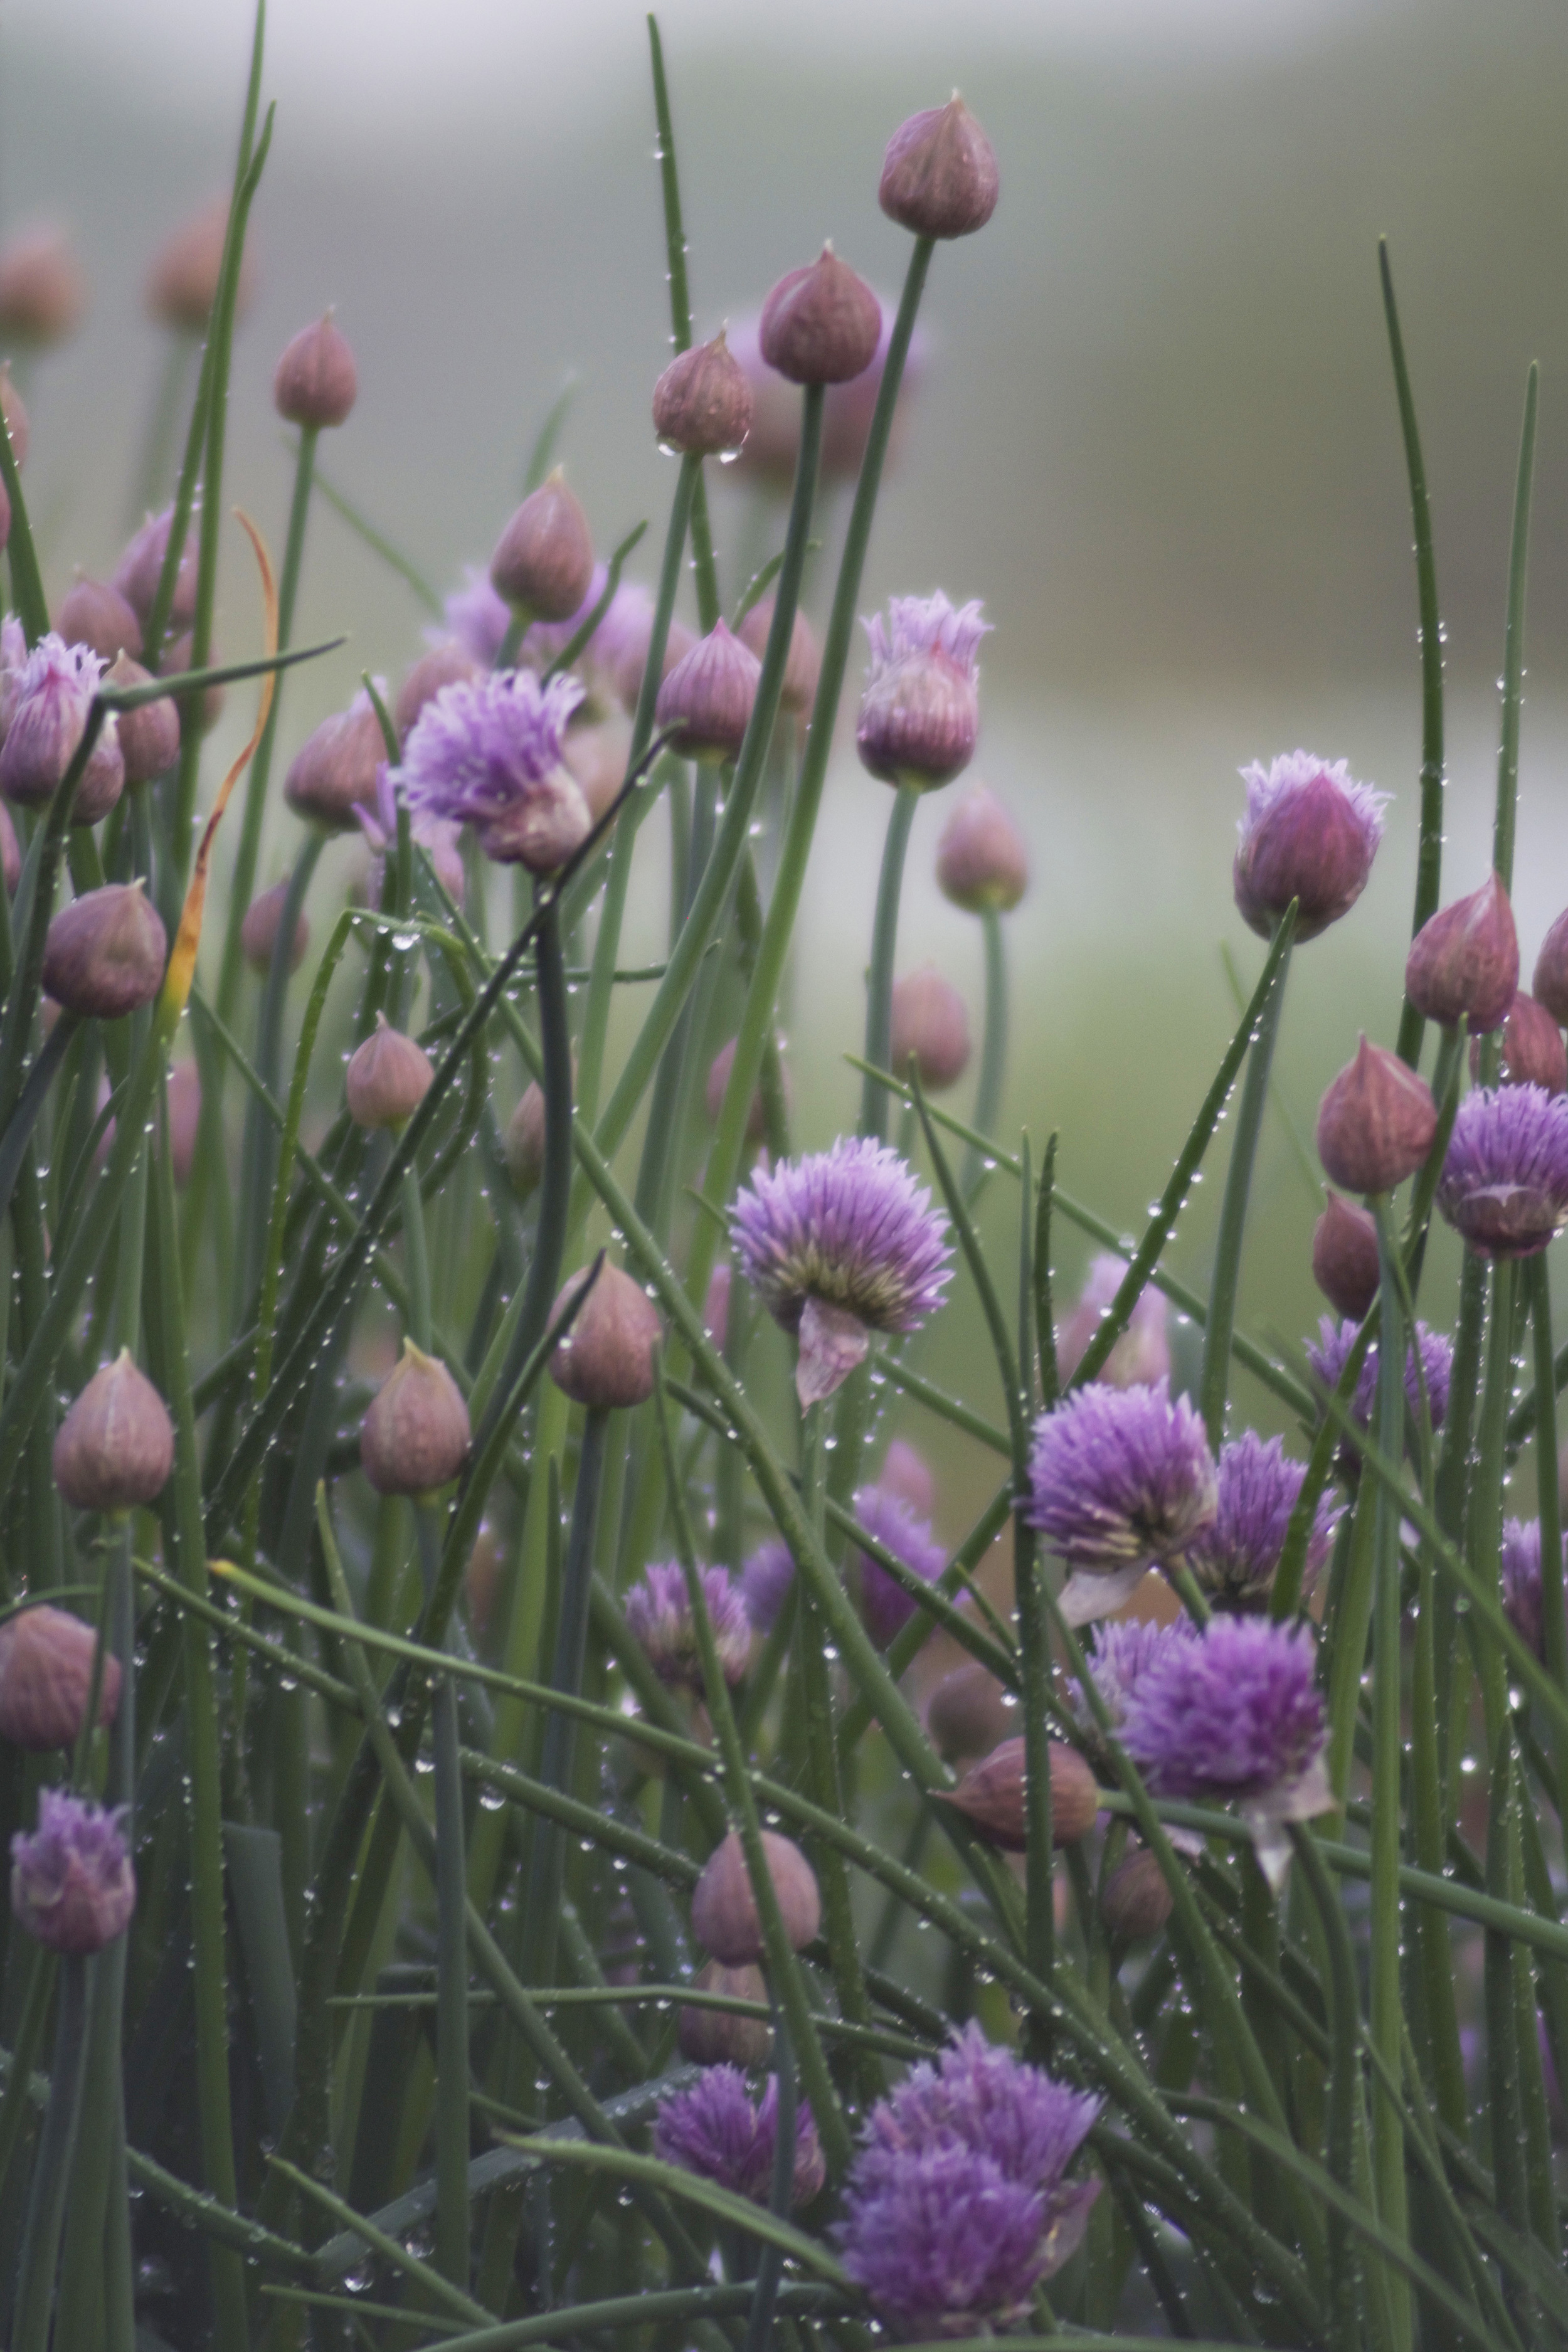 chives blossoms with rain drops.jpg